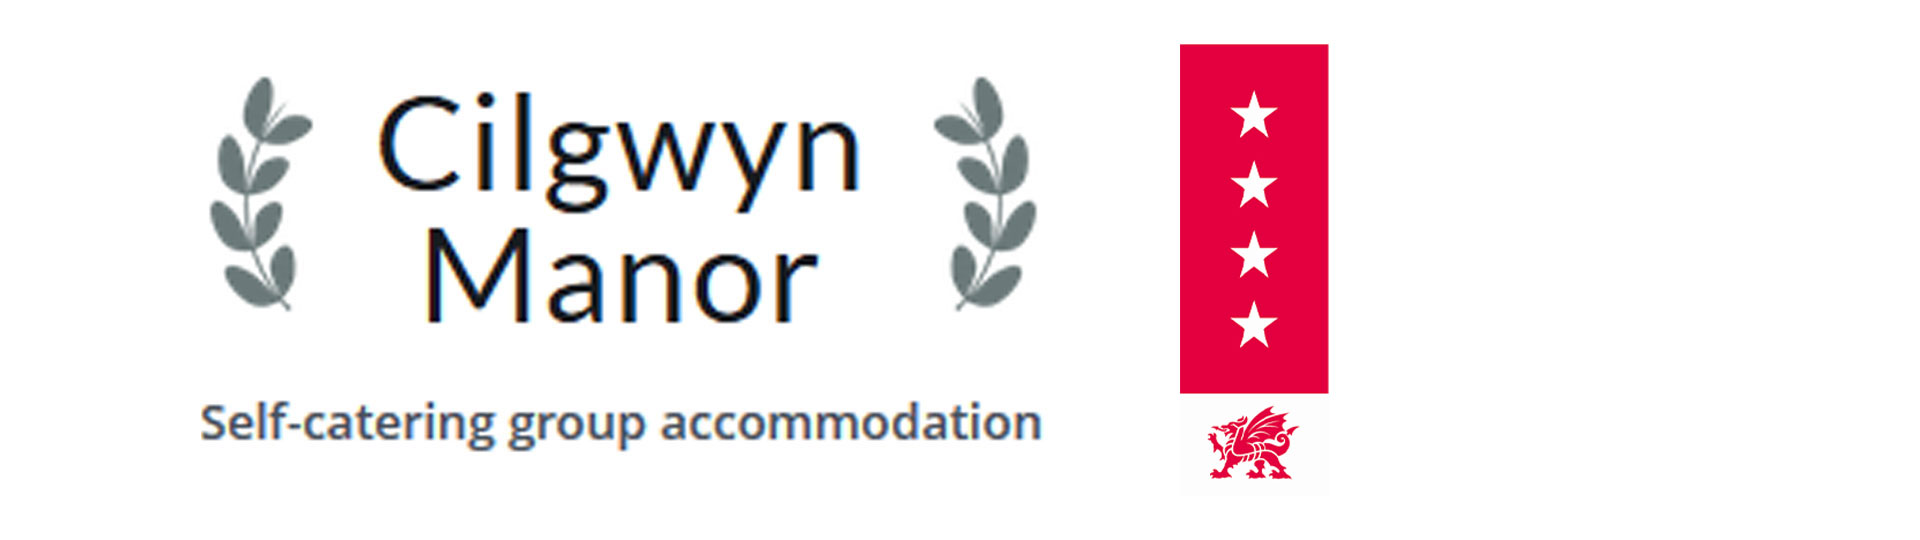 Cilgwyn Manor - group accommodation